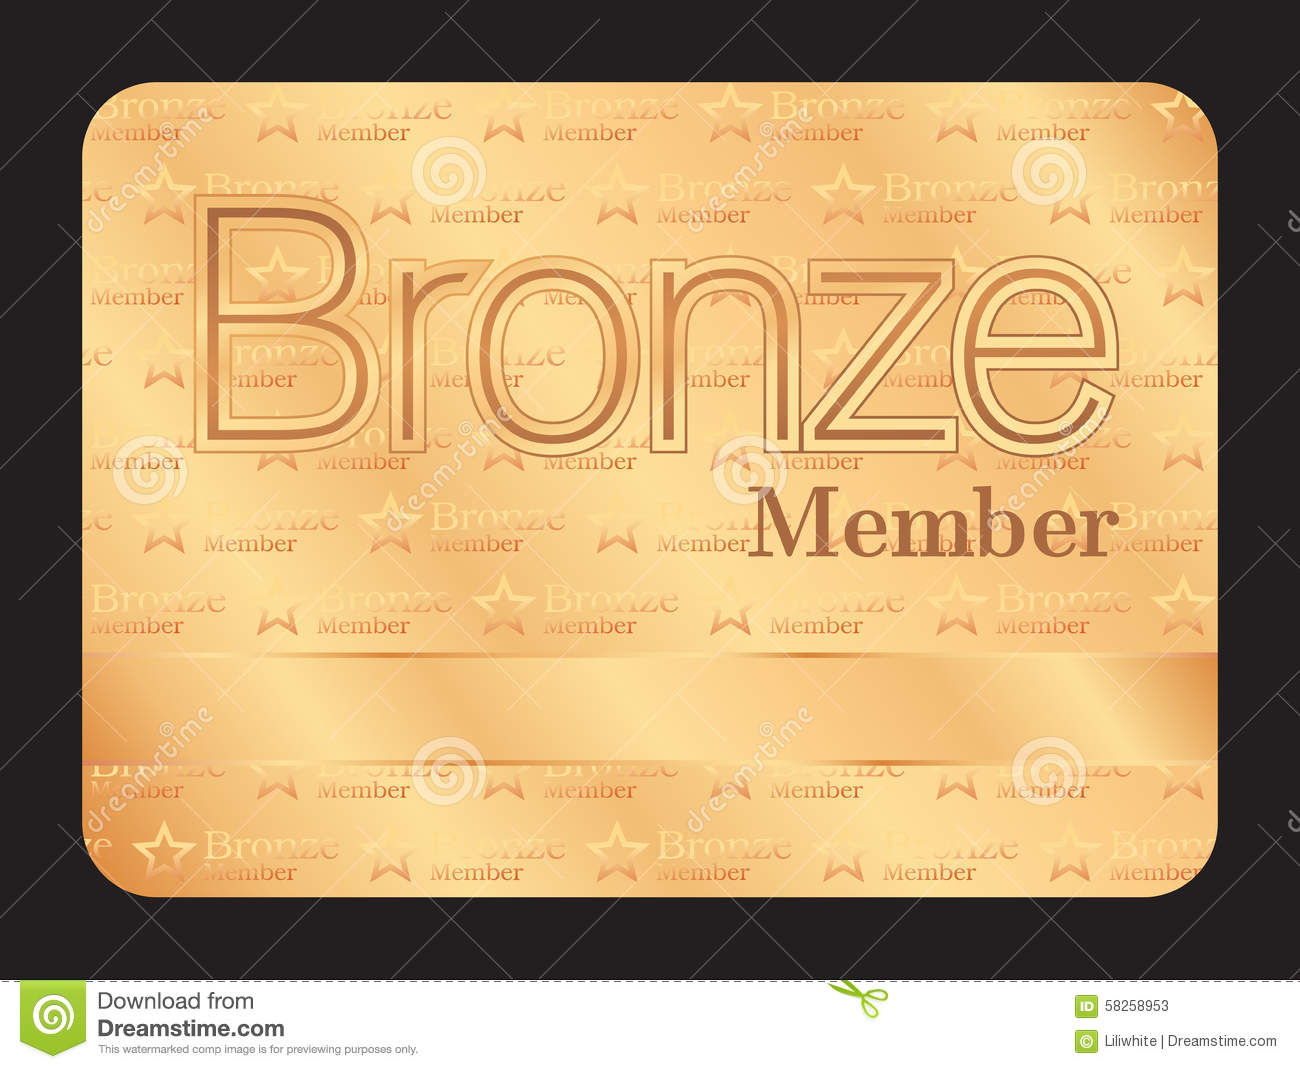 Bronze Member Club Card With Small Stars Pattern Stock